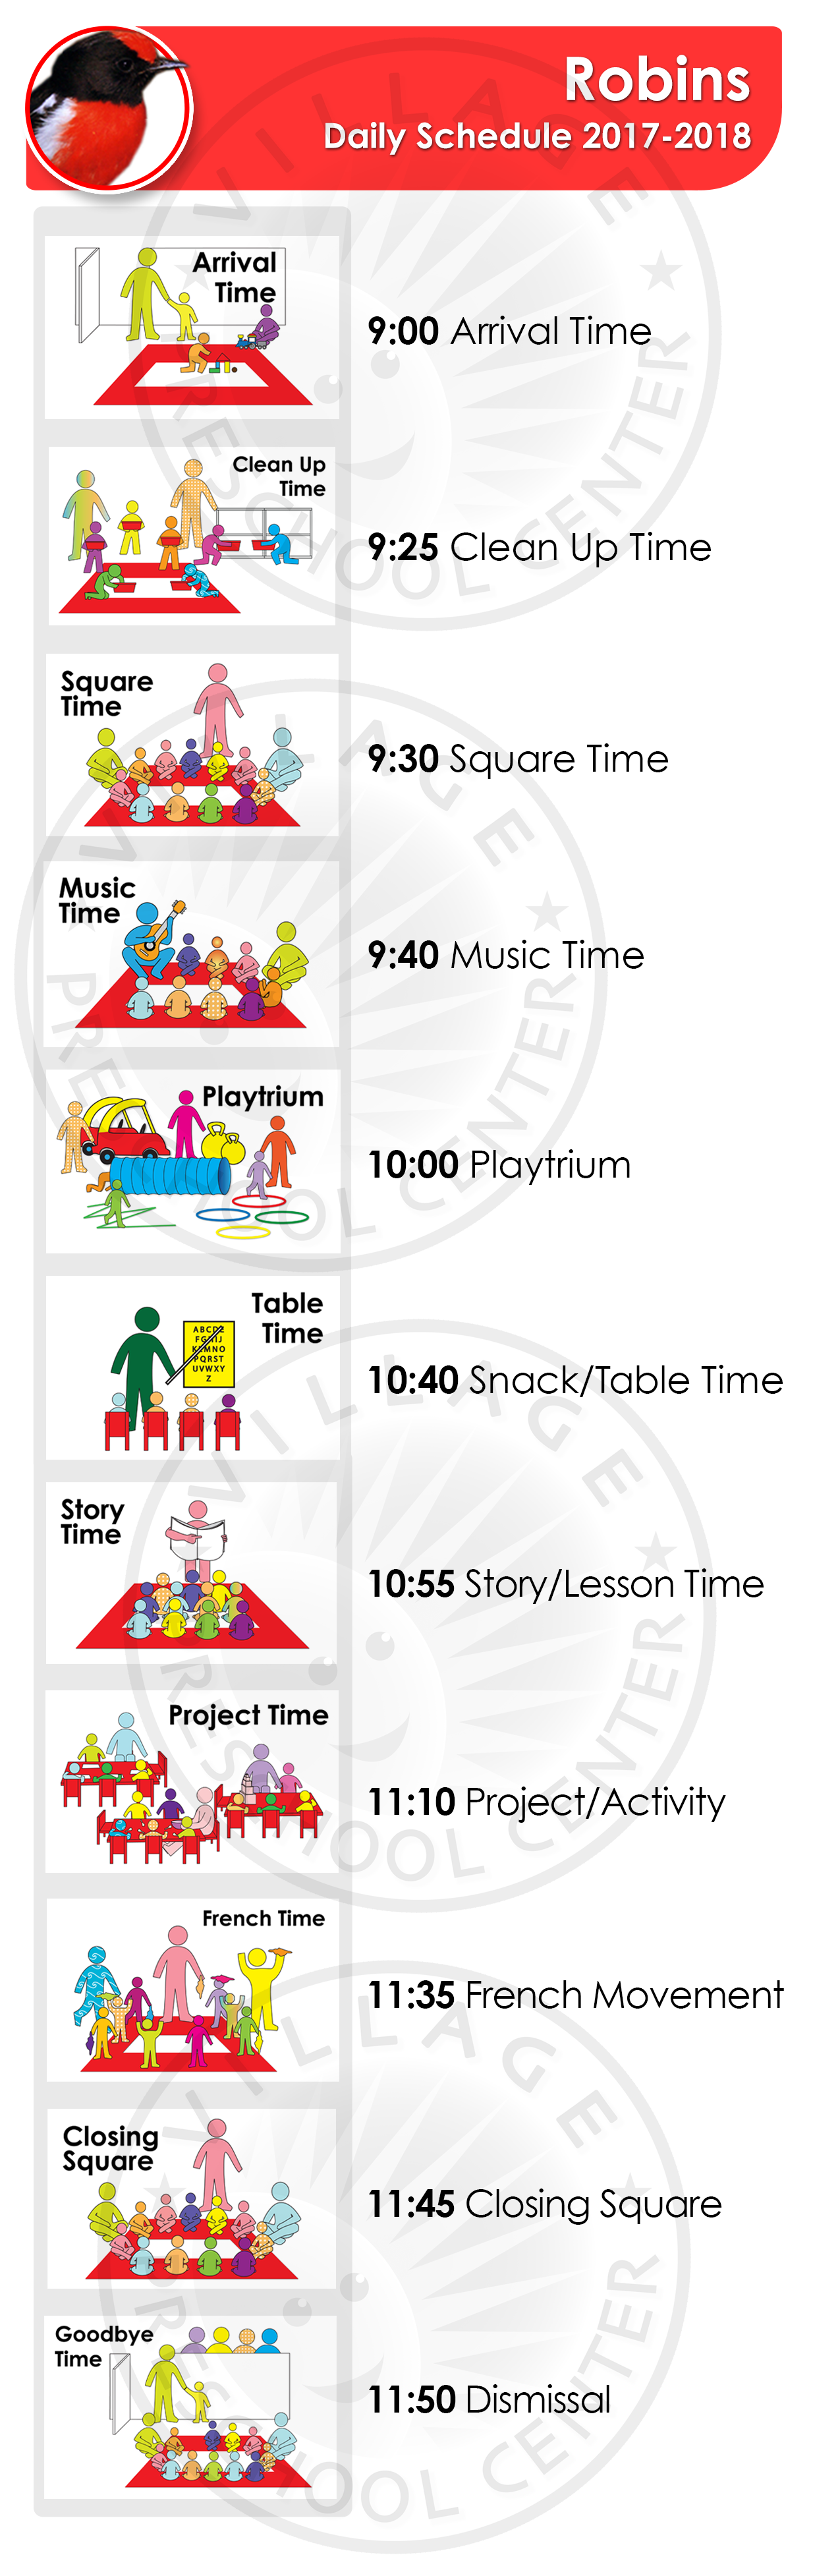 Daily schedule template letter proposal format event flyer examples 100 preschool daily schedule template weekly planning daily schedules robins preschool daily schedule templatehtml pronofoot35fo Choice Image